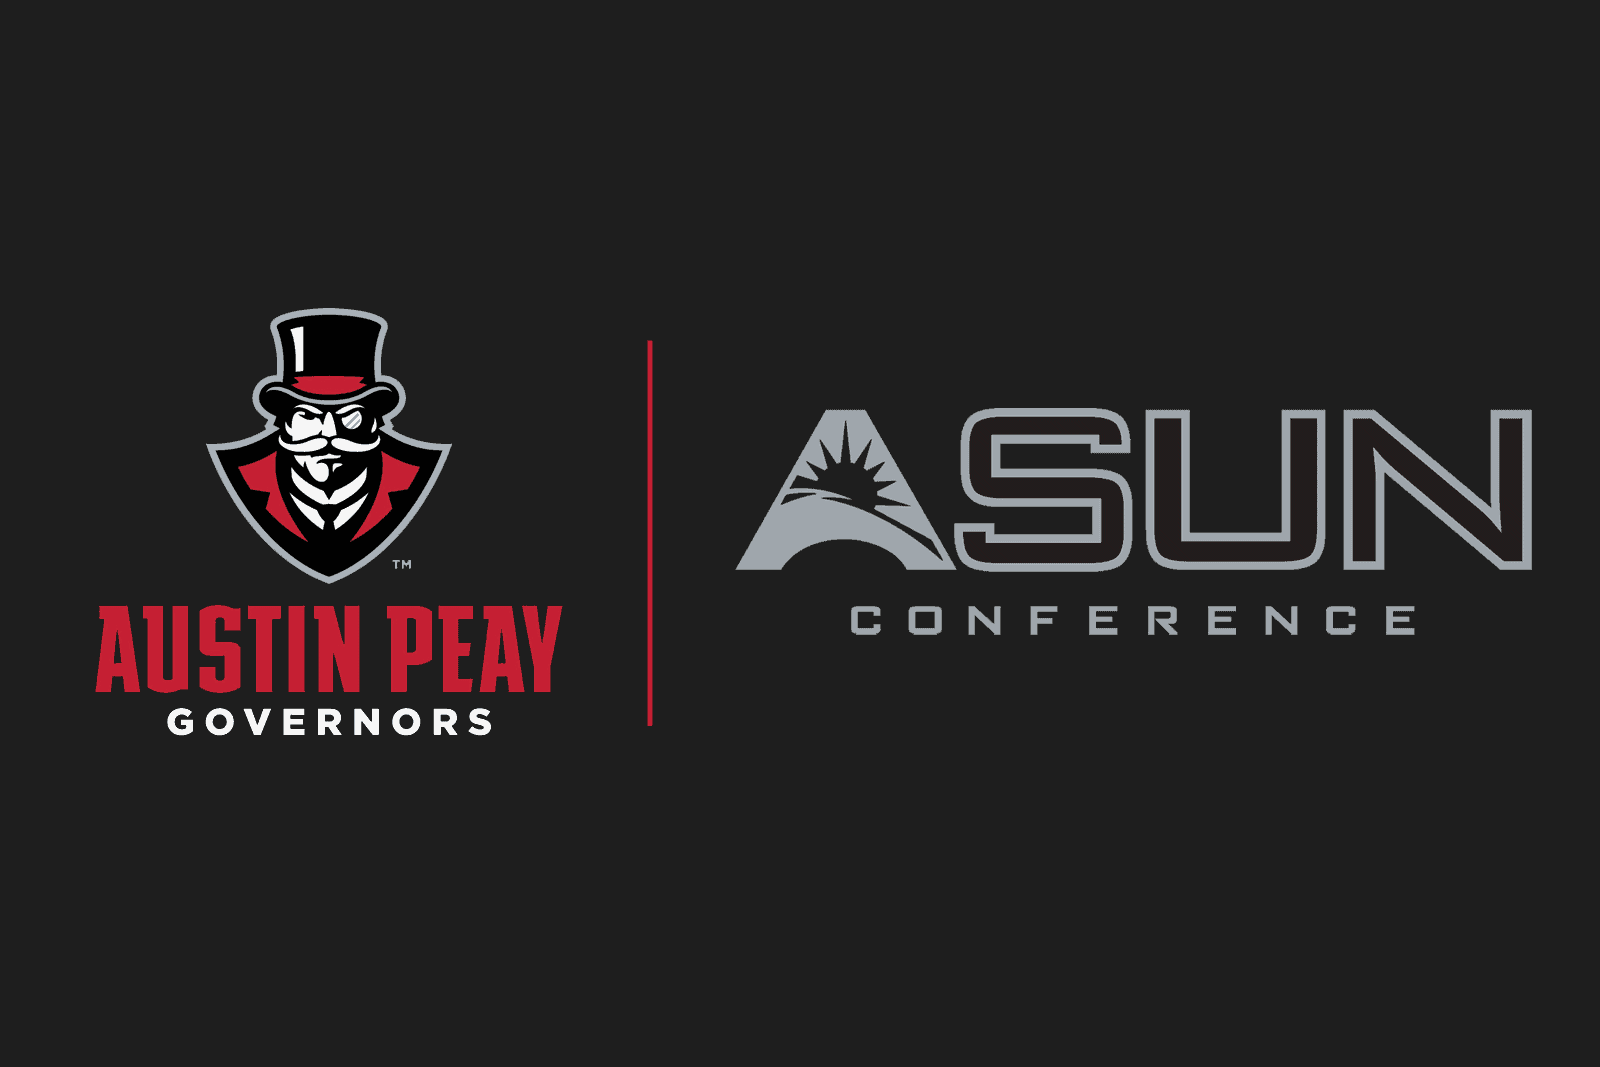 Austin Peay - ASUN Conference